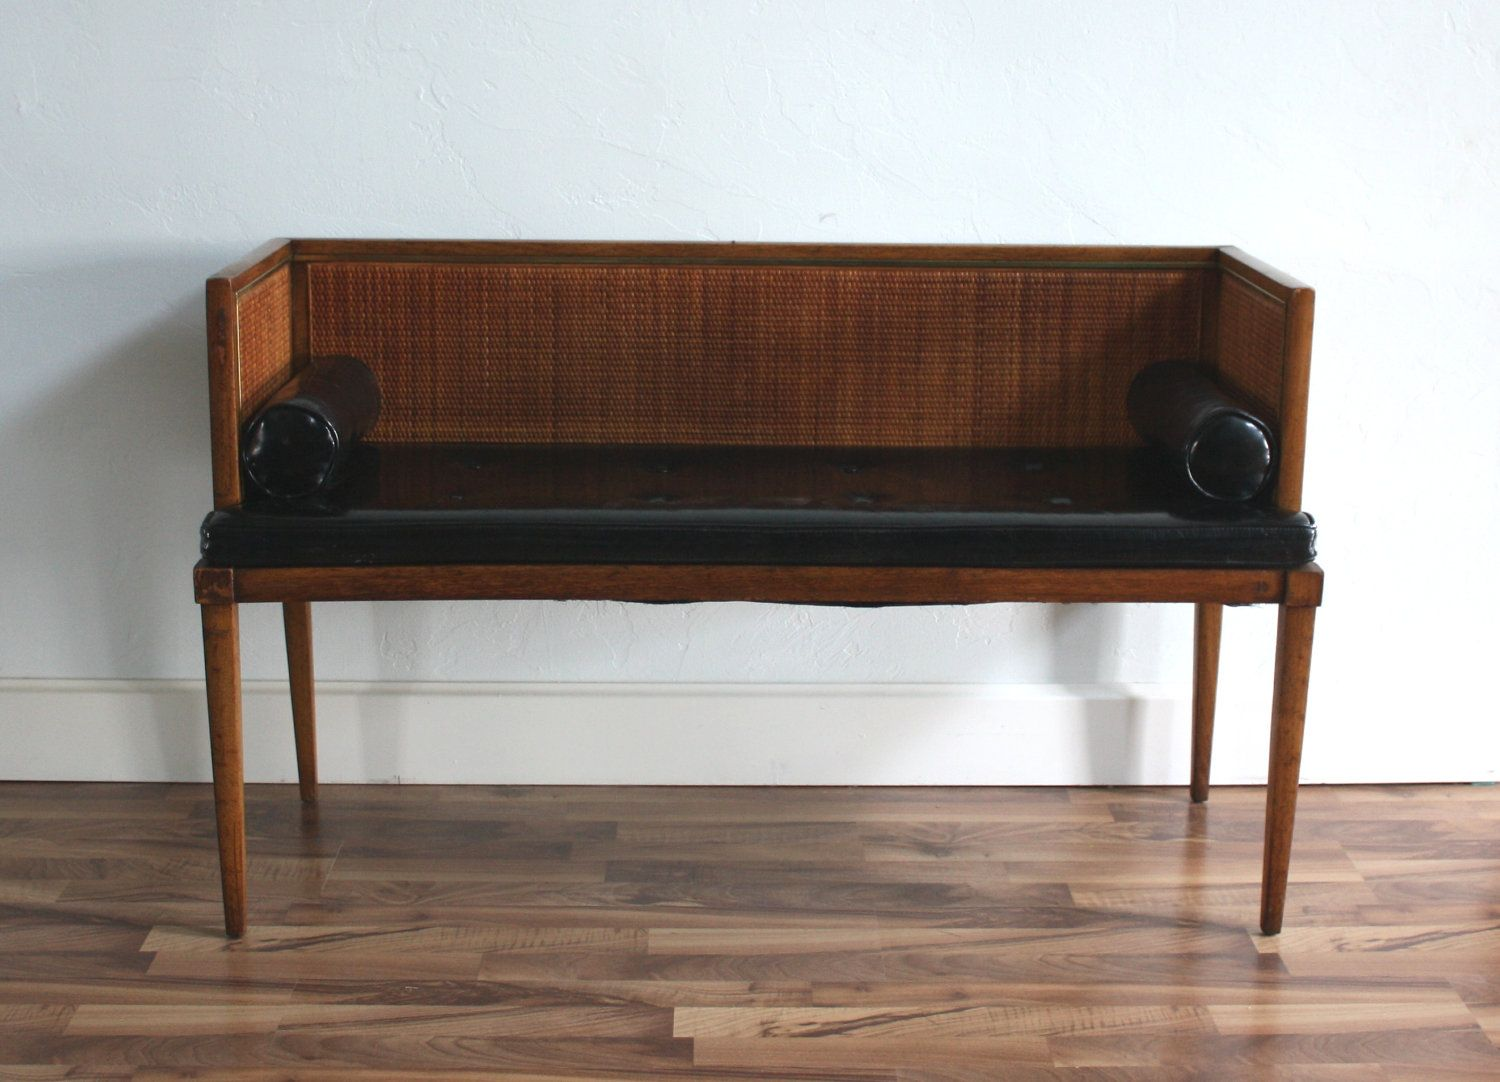 Vintage Mid Century Modern Settee Bench Sofa Black Leather Tufted Seat With Bolsters Mid Century Modern Settee Upholstered Settee Settee Bench